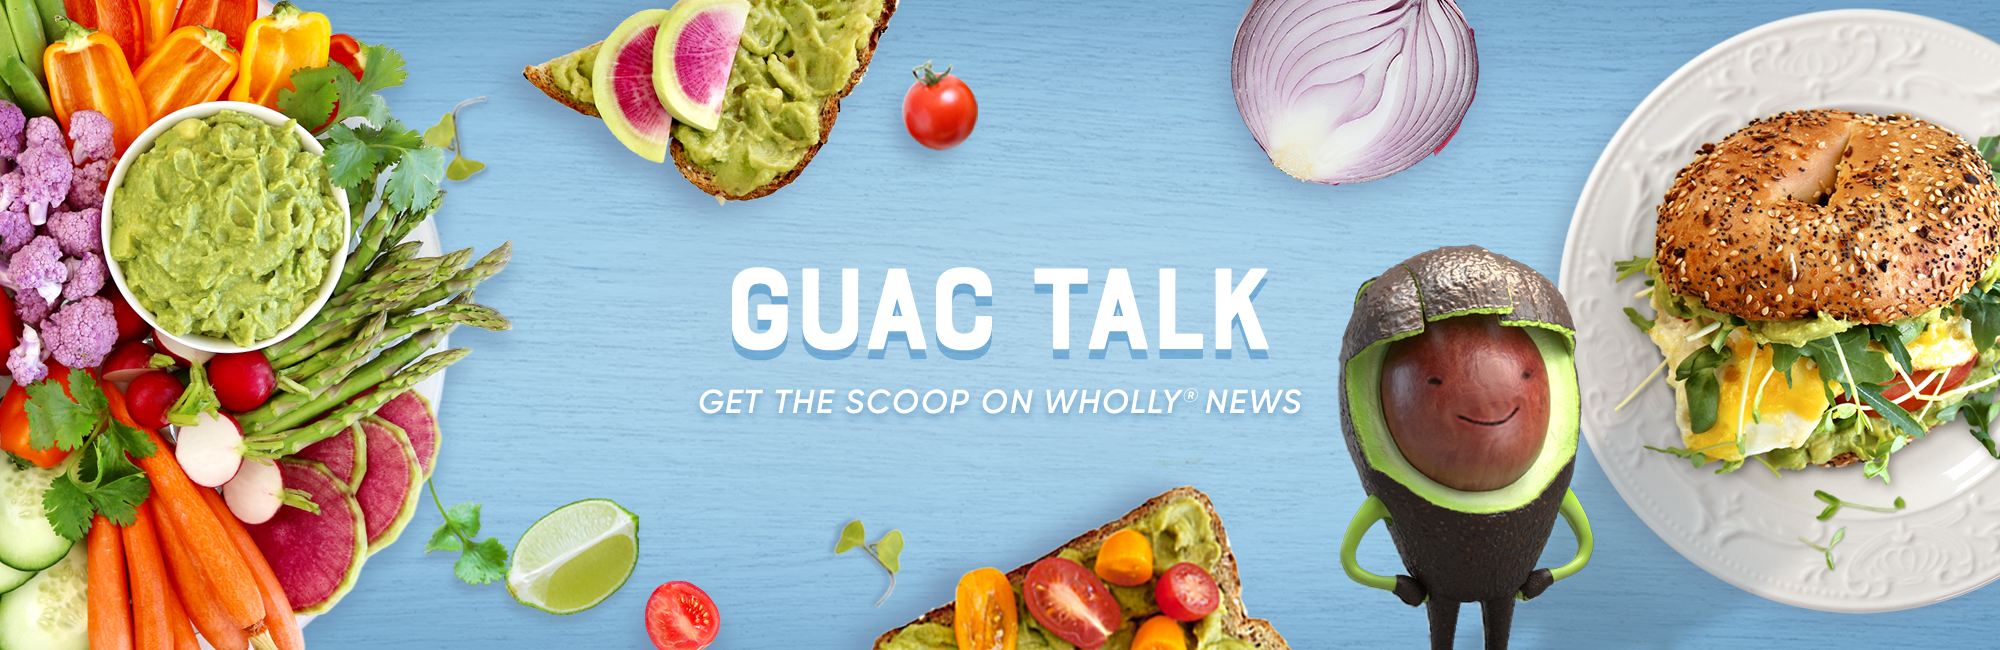 Guac Talk Where Wholesome Meets Always Ready